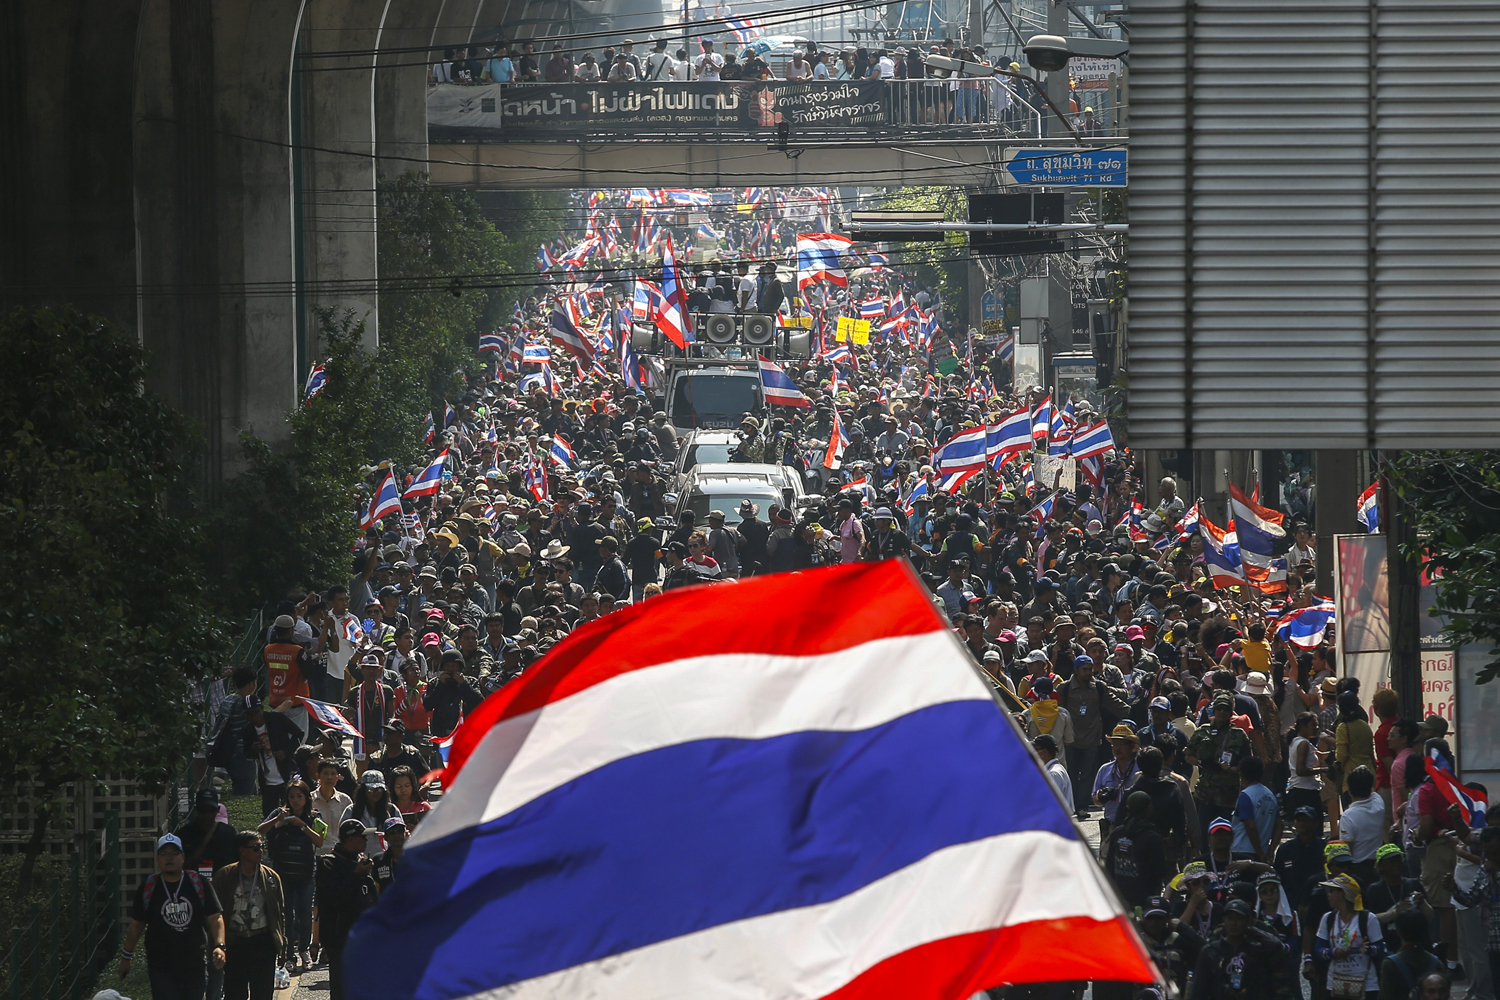 Anti-government protesters take part in a rally in central Bangkok Jan. 30, 2014